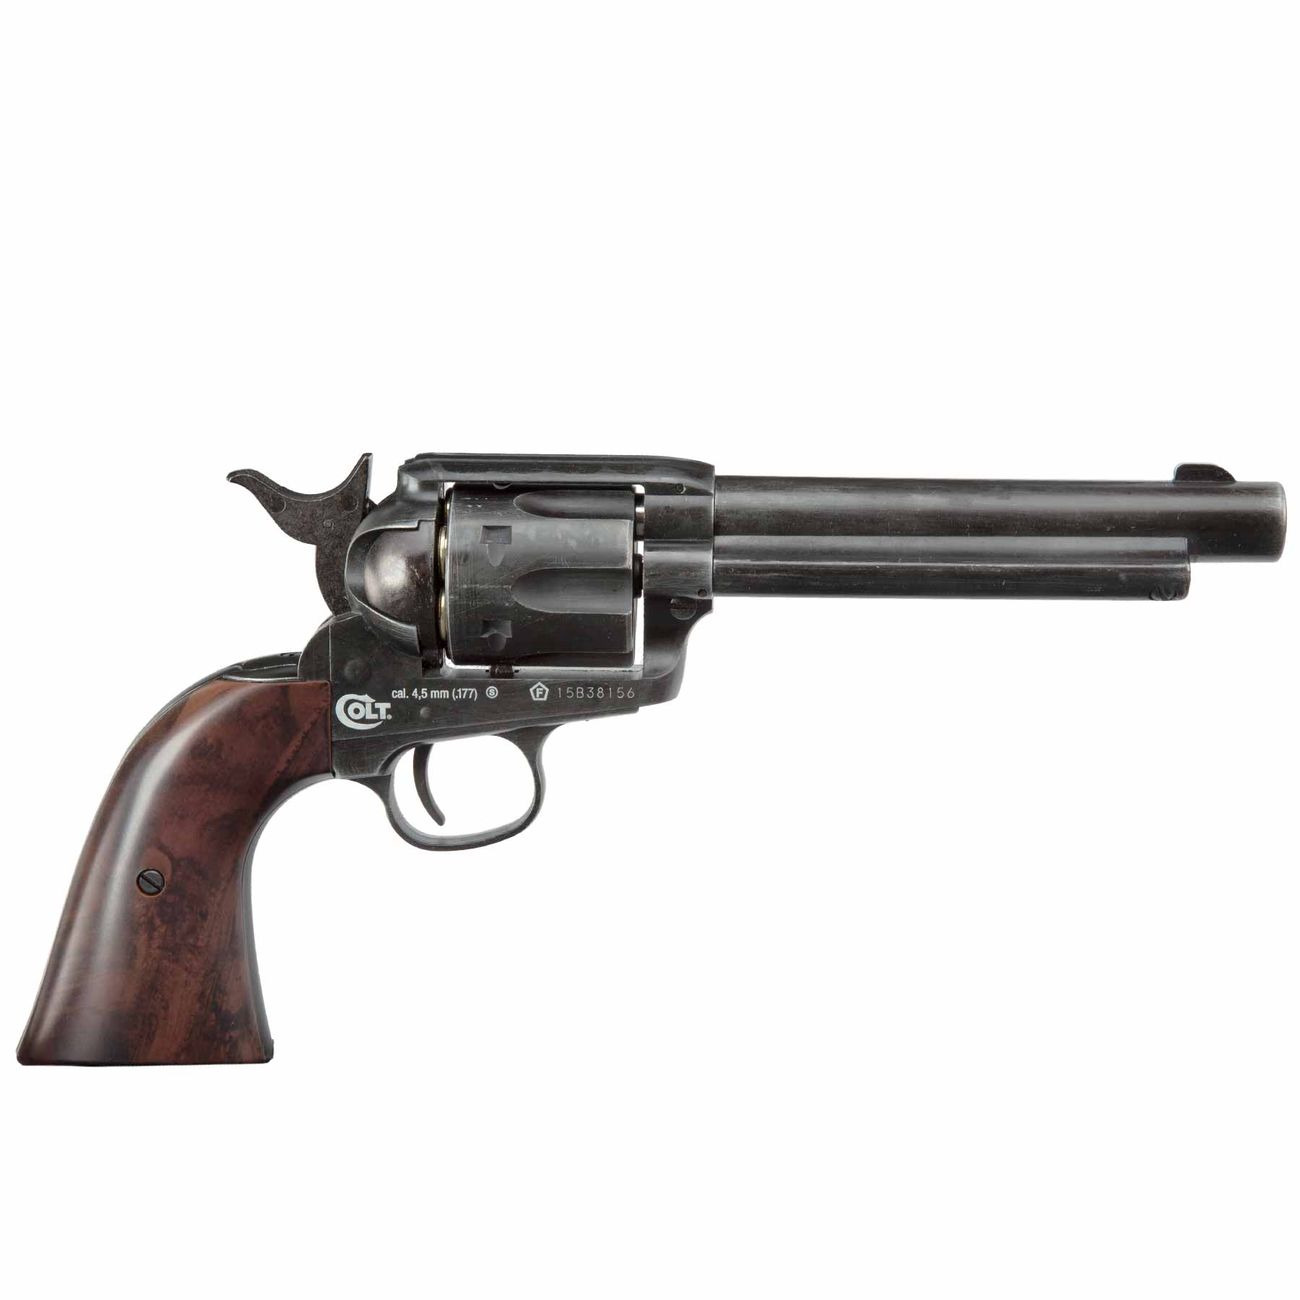 Colt Single Action Army 45 antik CO2 Revolver 4,5mm BB 3